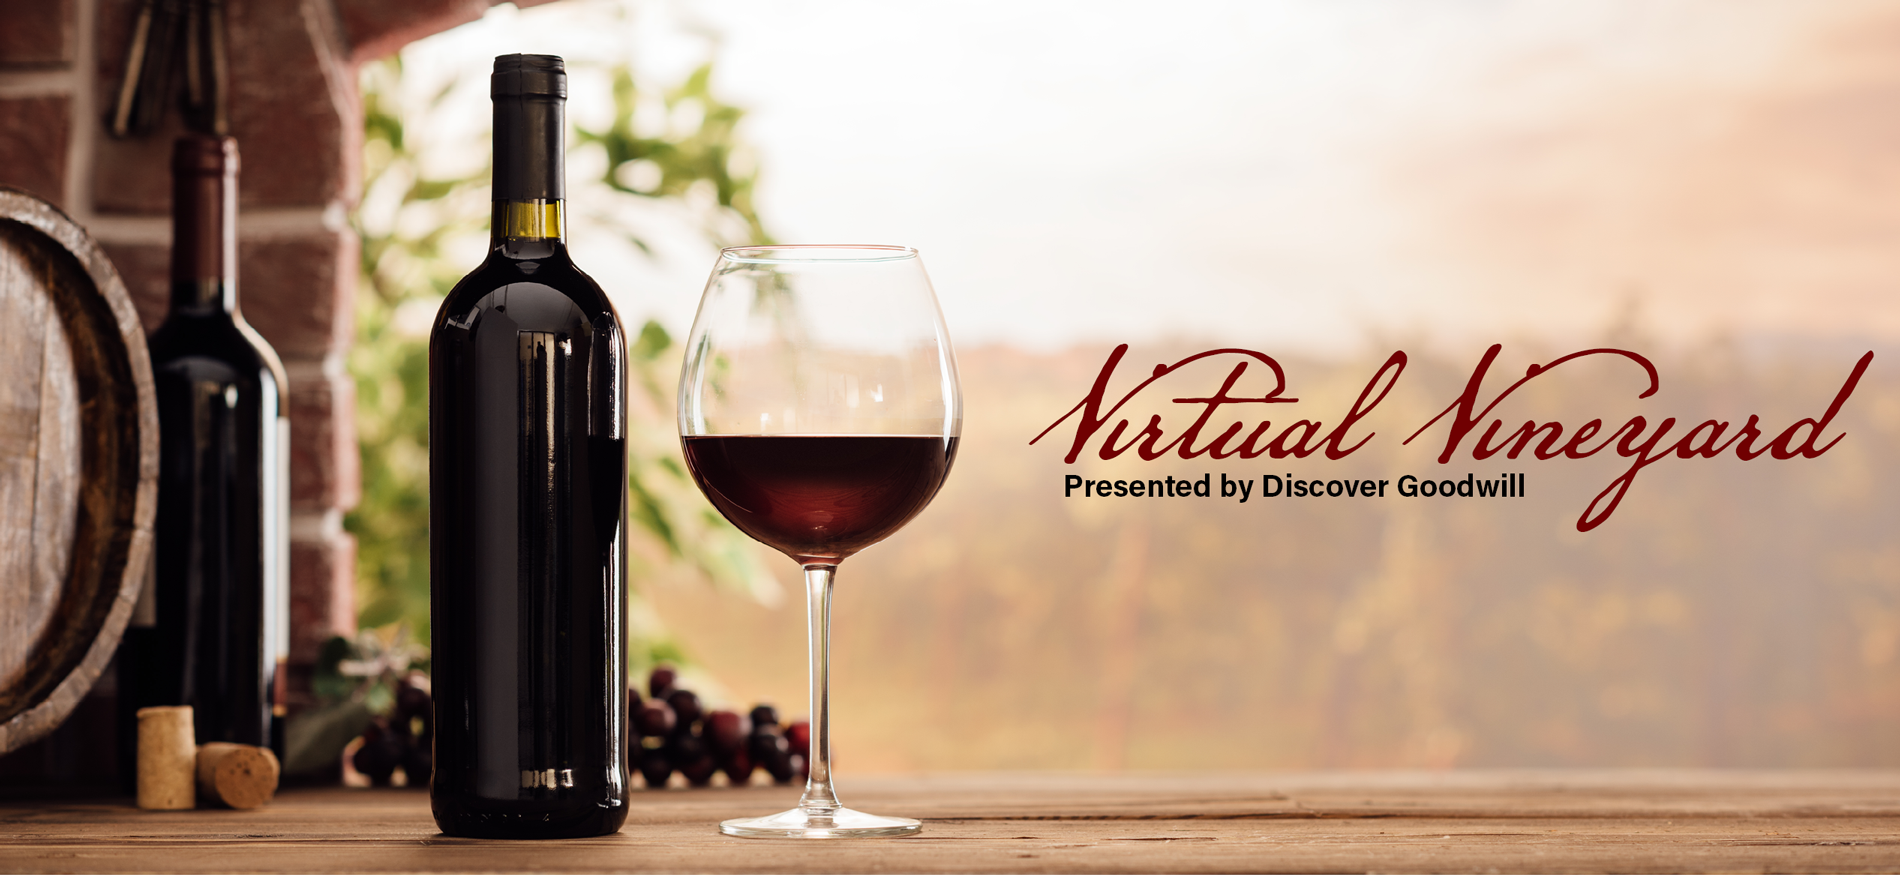 Virtual Vineyard presented by Discover Goodwill